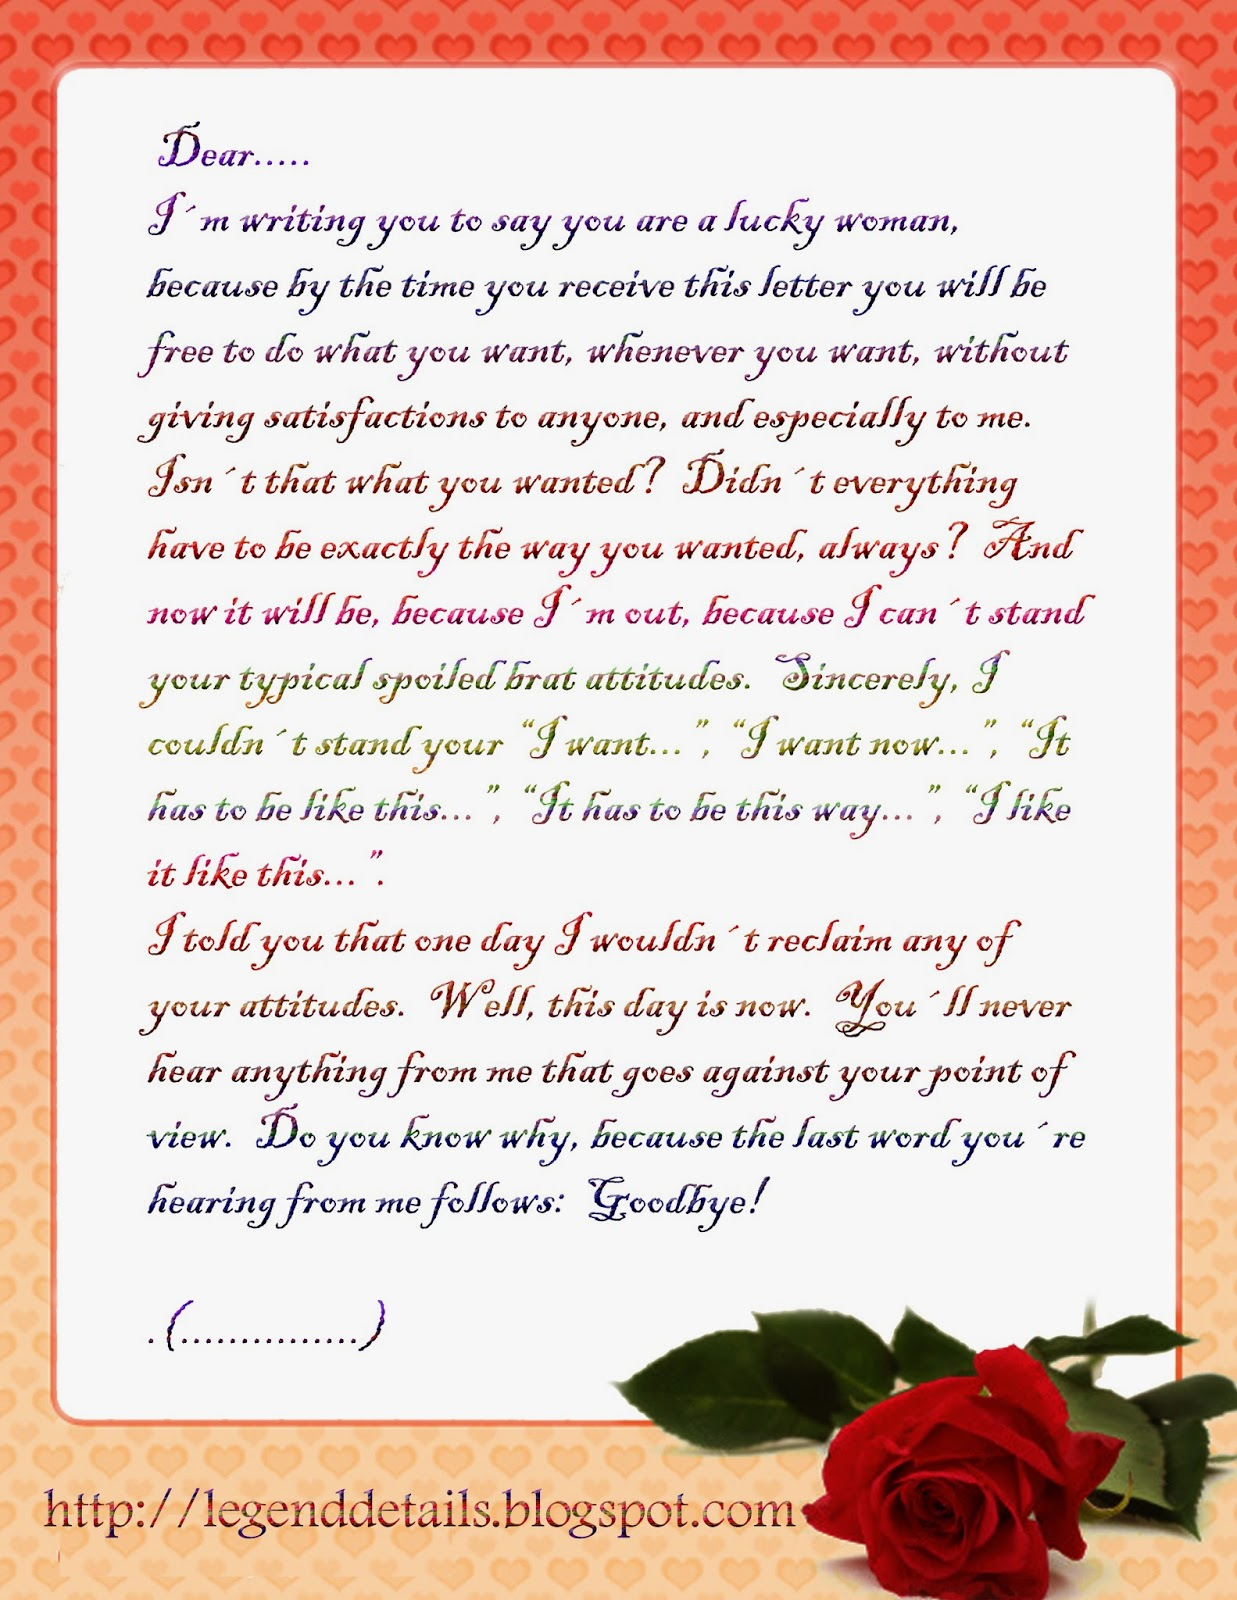 Love letter for him in english gallery letter format formal example love letters for him in english gallery letter format formal example thecheapjerseys